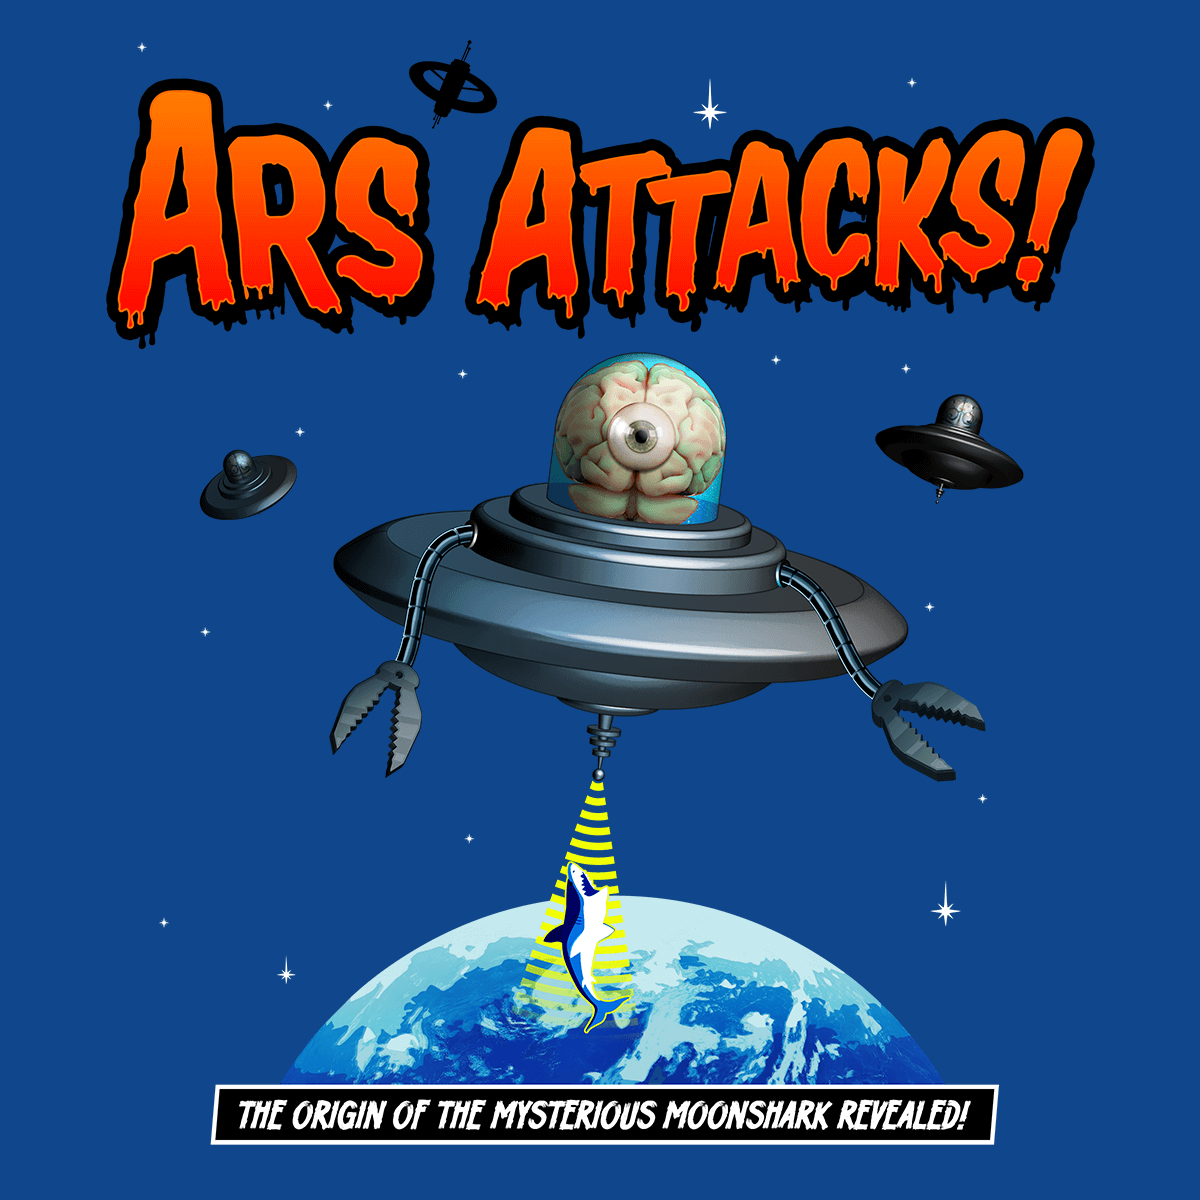 Ars-Attacks! Artwork